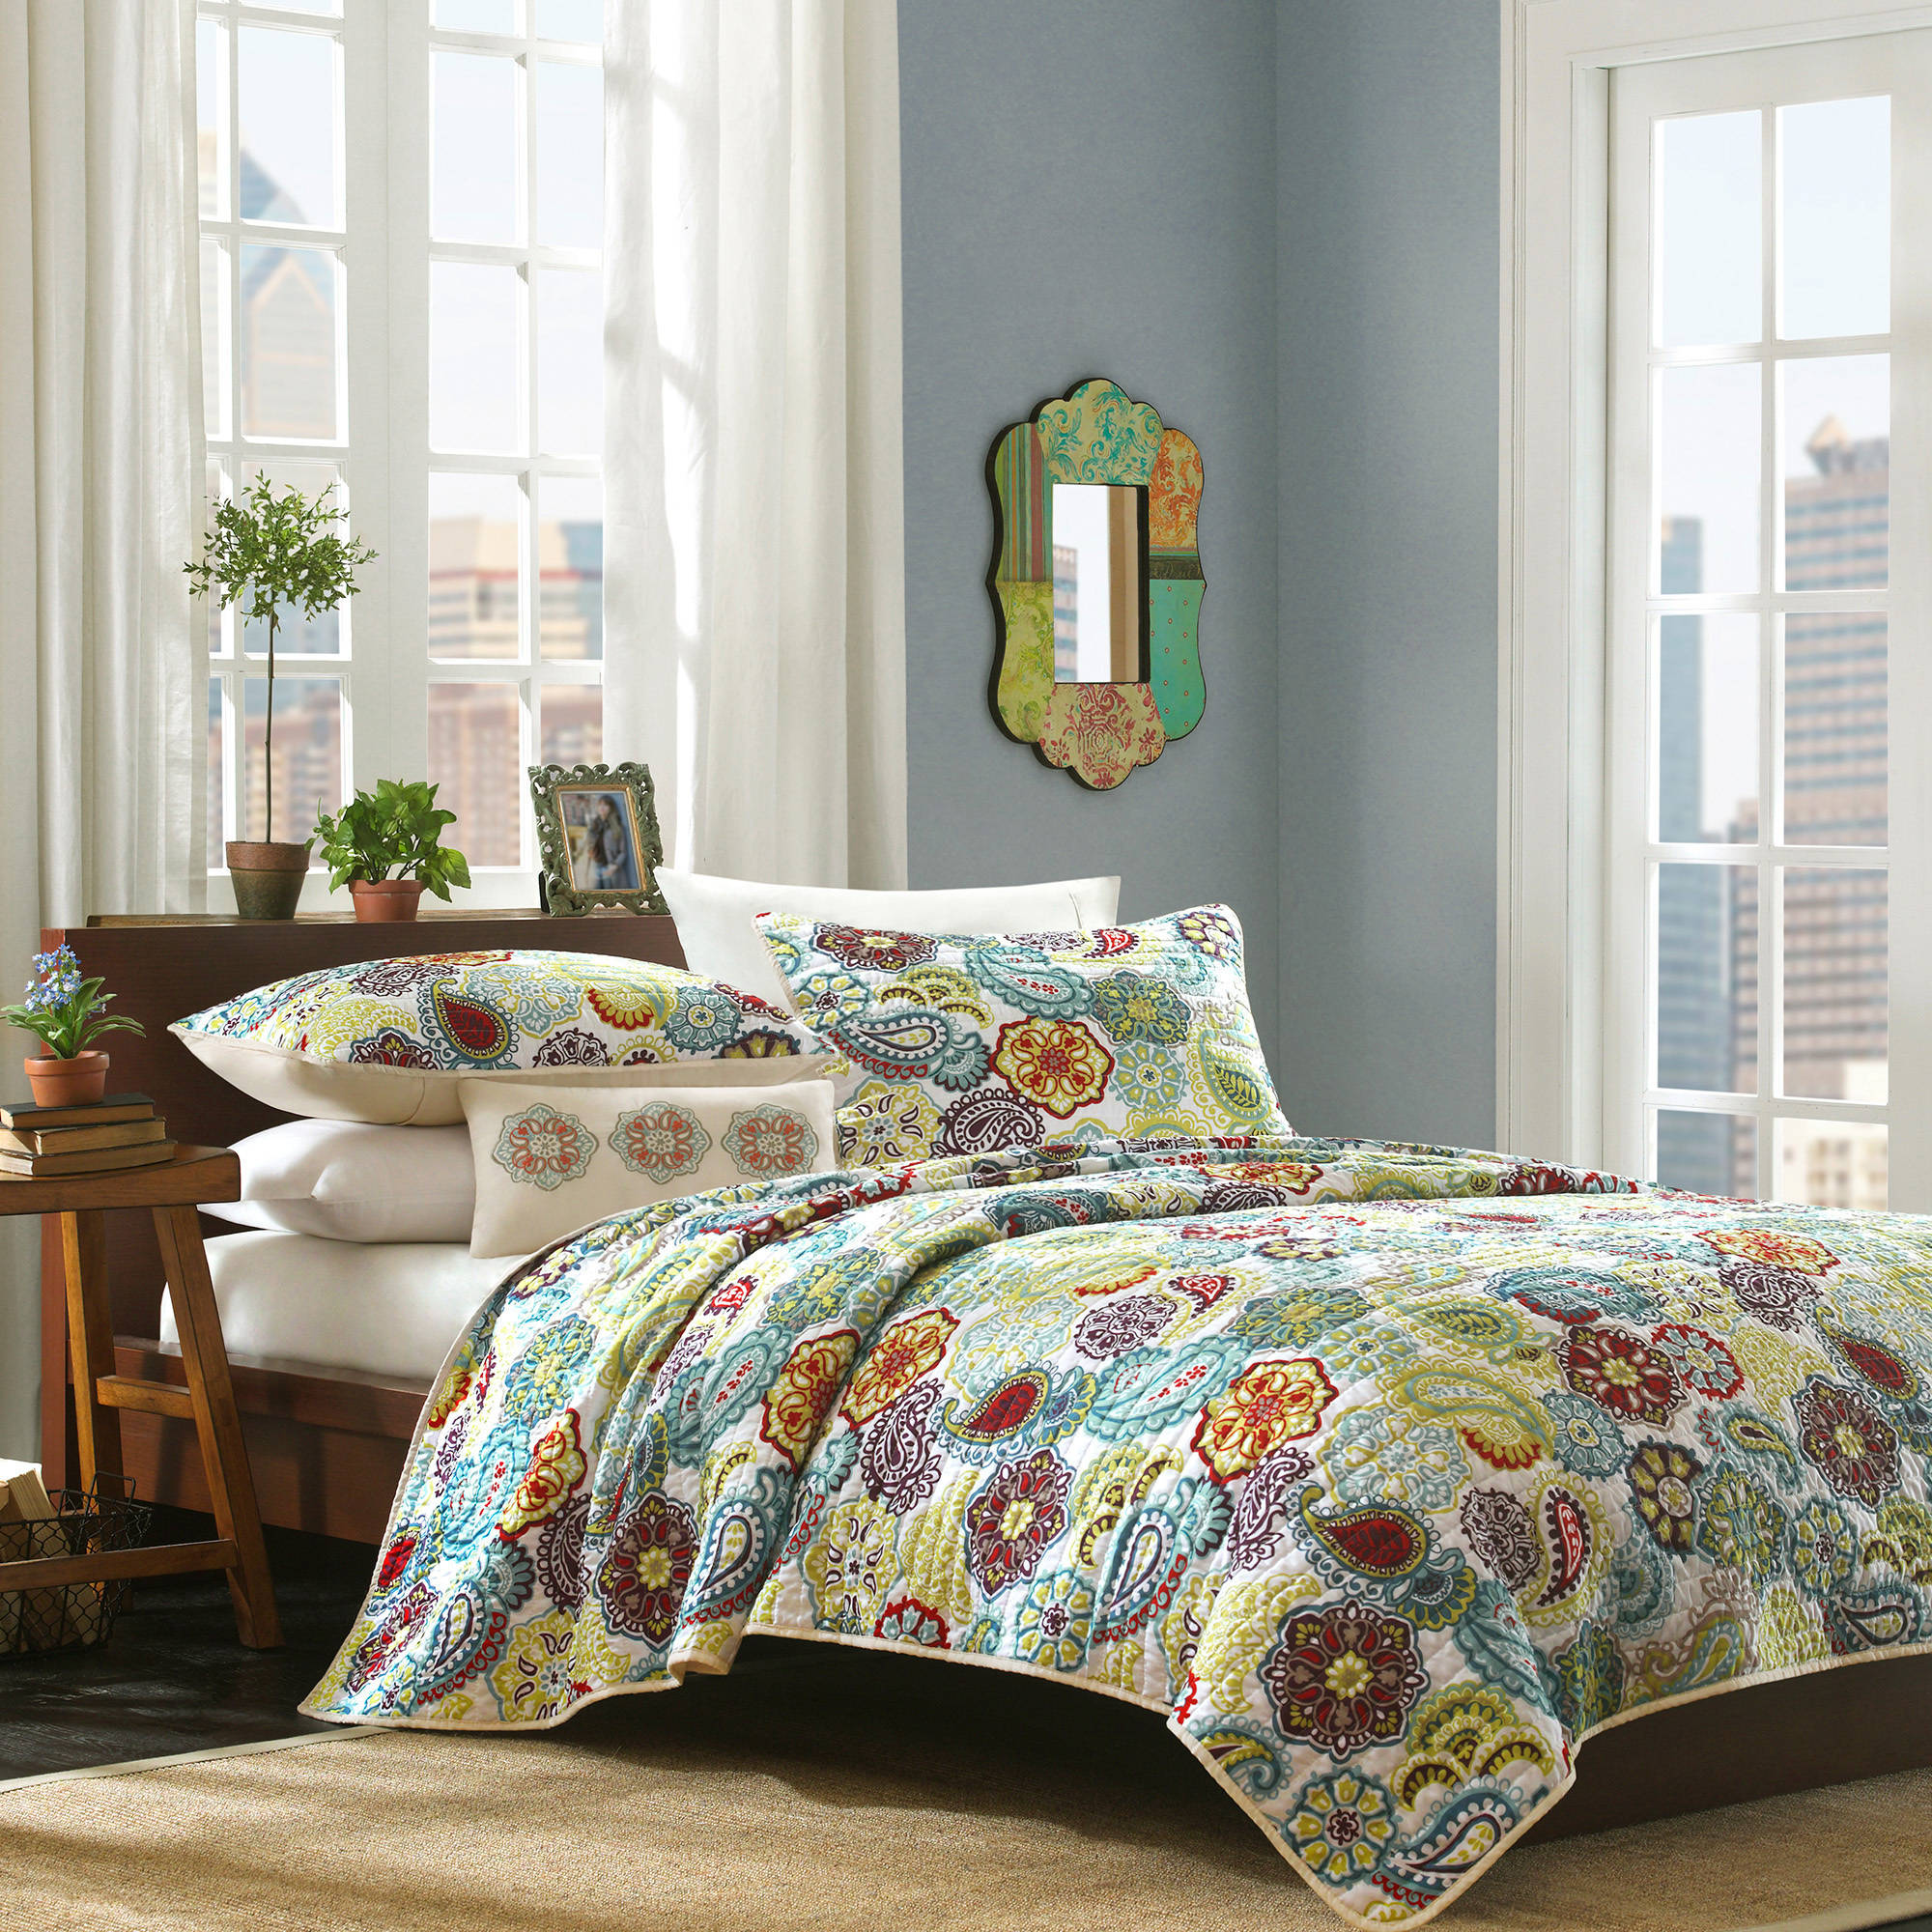 Home Essence Apartment Tula Quilt Set by Generic